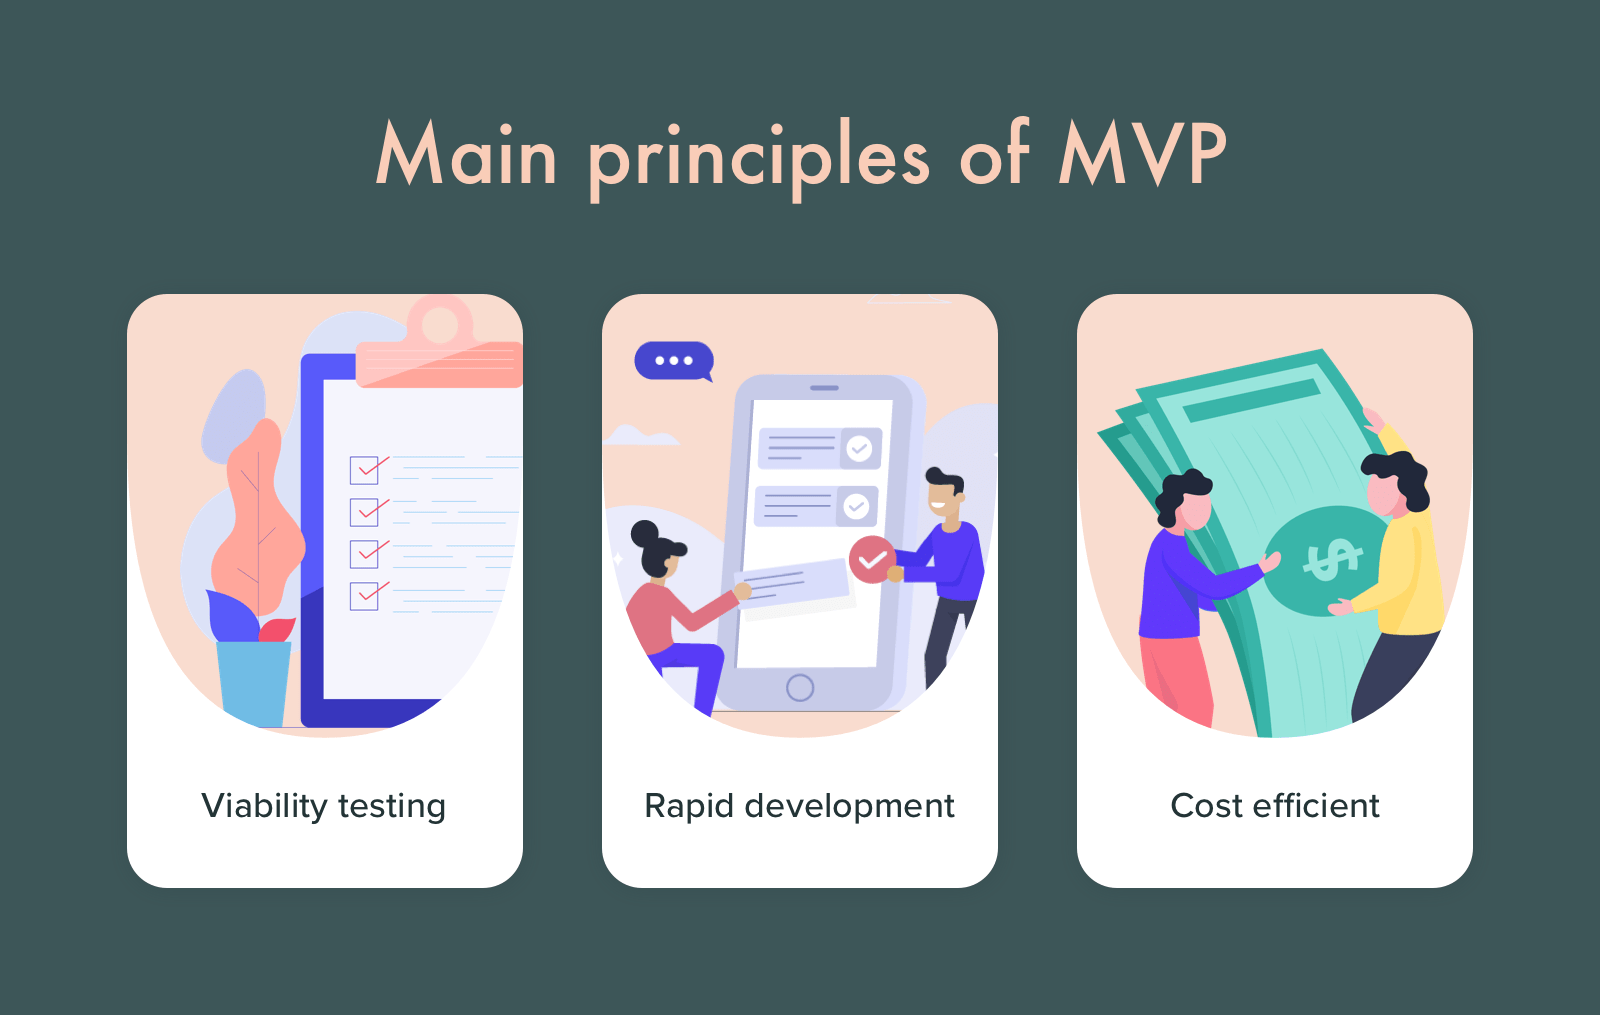 Basic principles of MVP